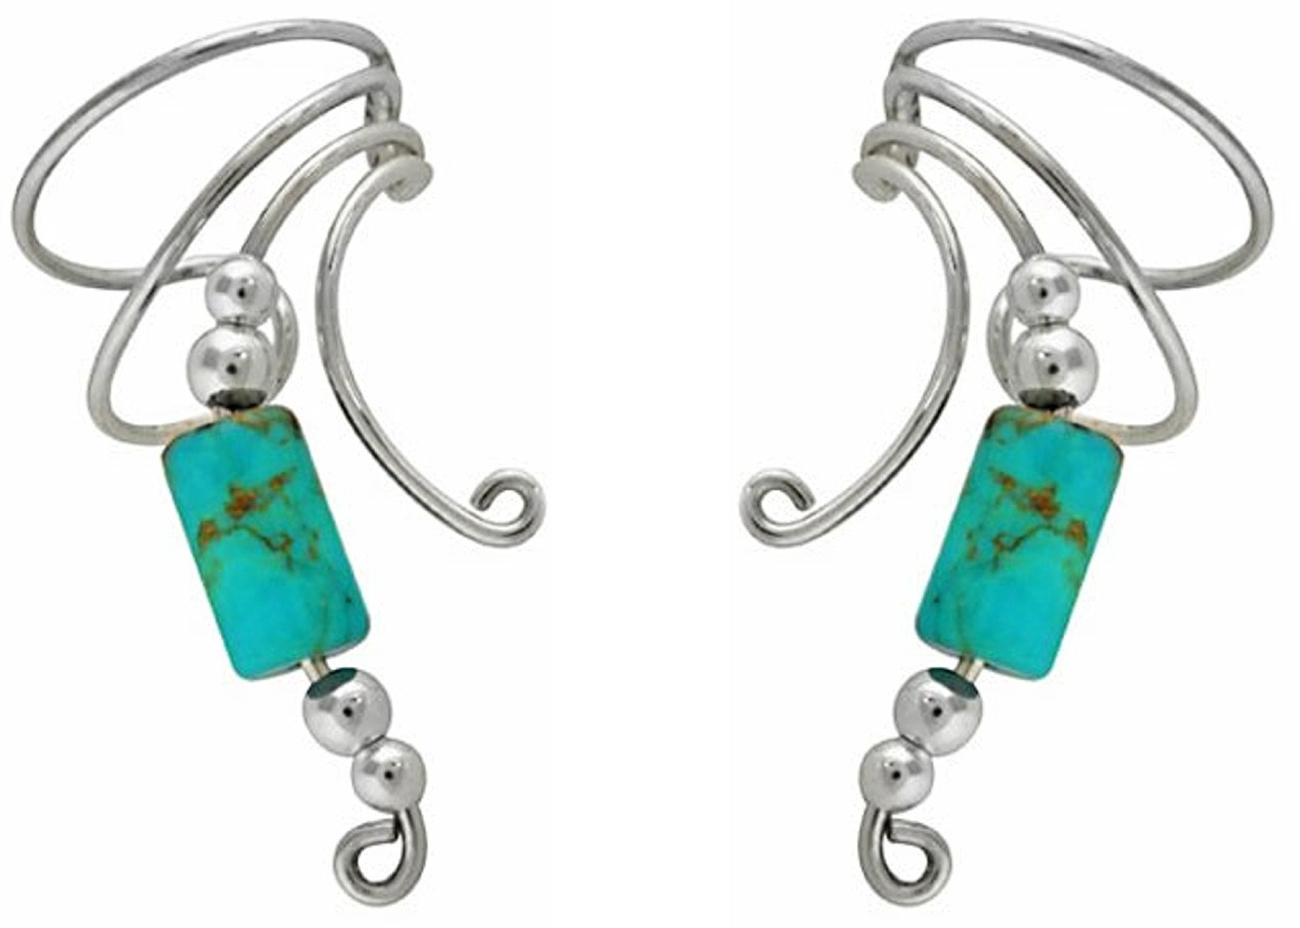 Turquoise Cylinder Wave Ear Cuff Wrap Set